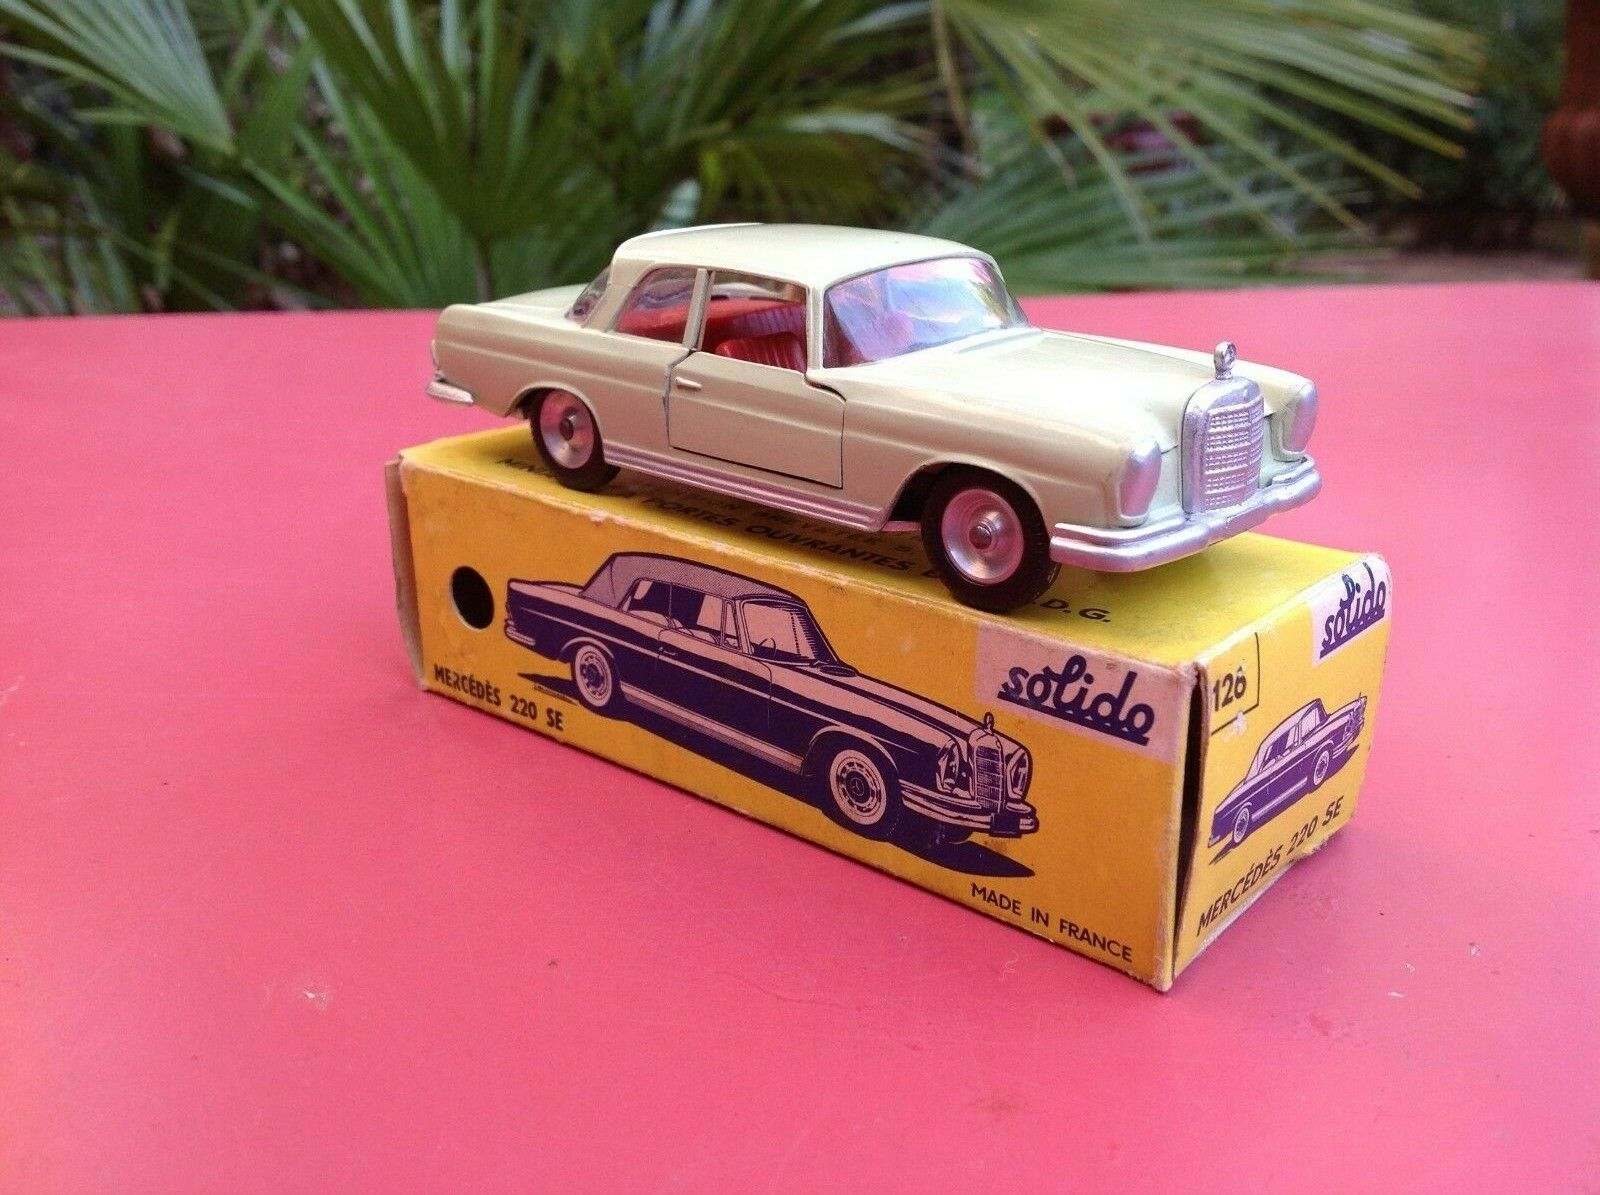 Solido Ref 126 MERCEDES 220 SE Sautoce lime verde rosso interior near mint in scatola